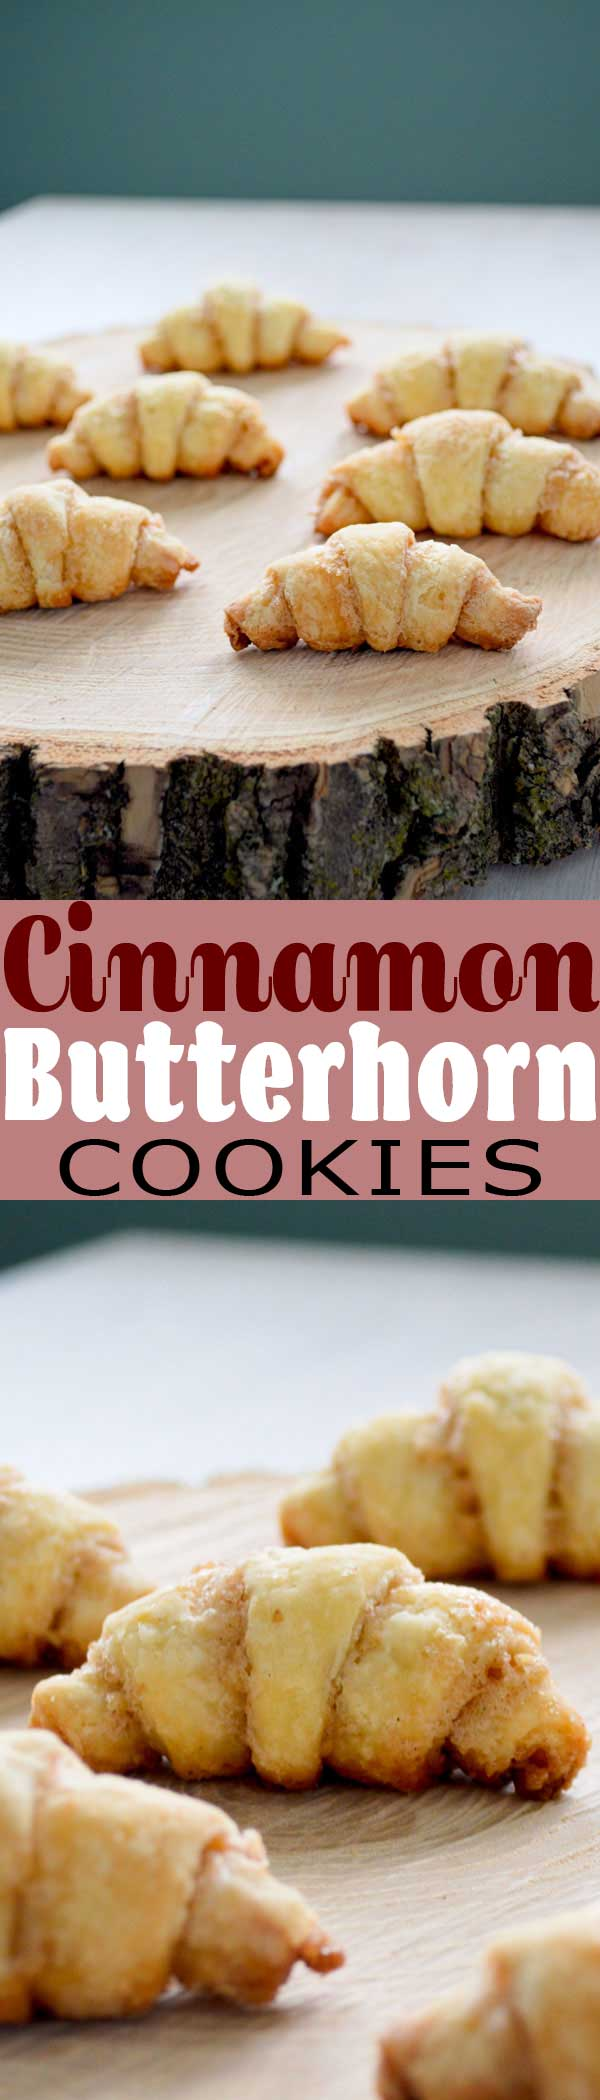 Cinnamon Butterhorn Cookies recipe just like mom used to bake! Buttery German danish with cinnamon sugar caramelized bottoms. #christmascookies